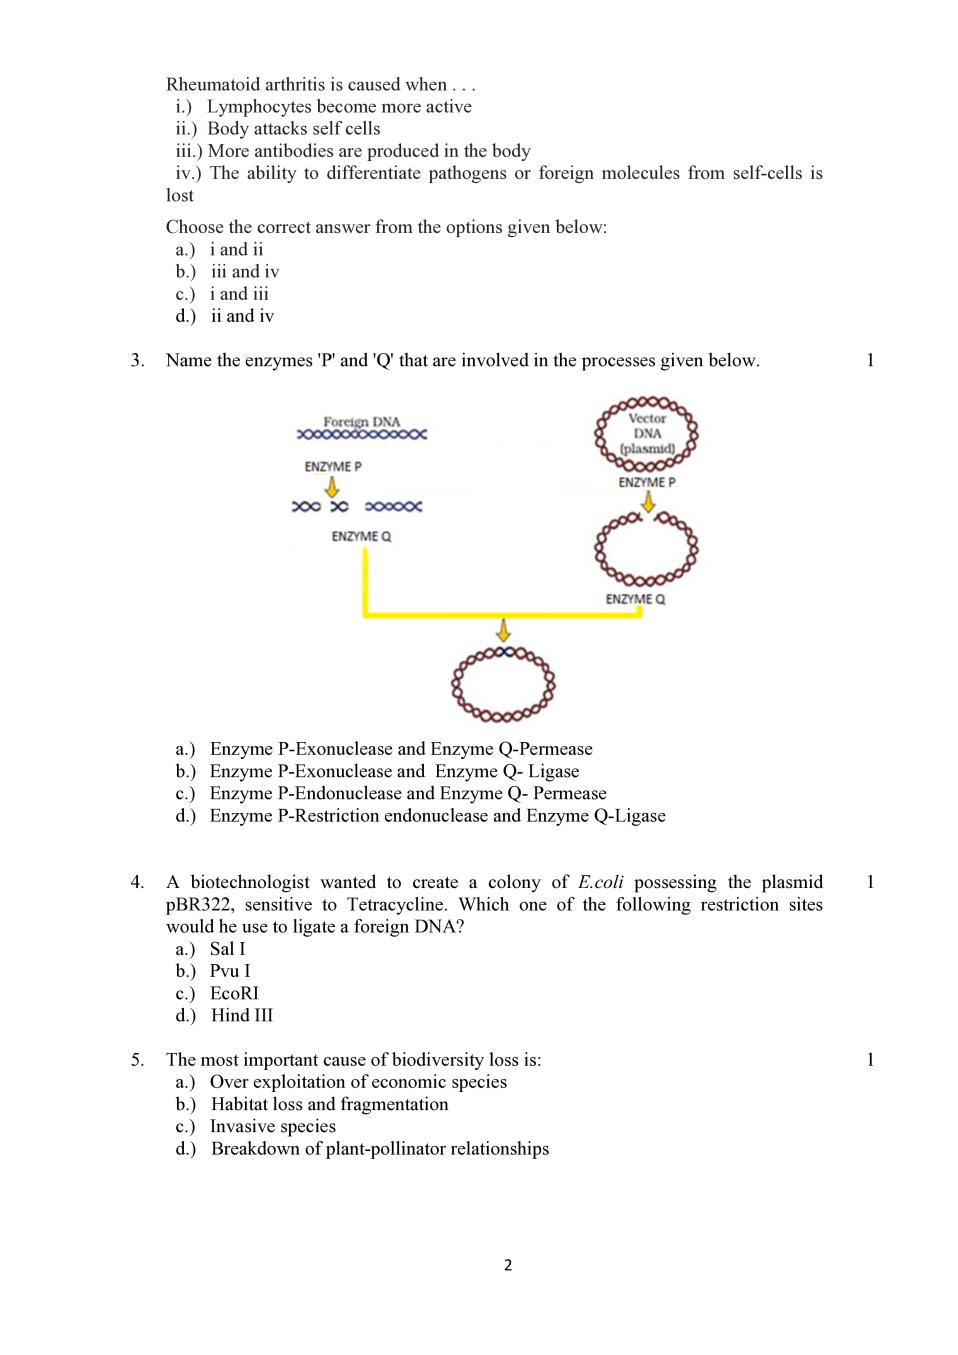 CBSE Sample Papers 2020 for Class 12 – Biology